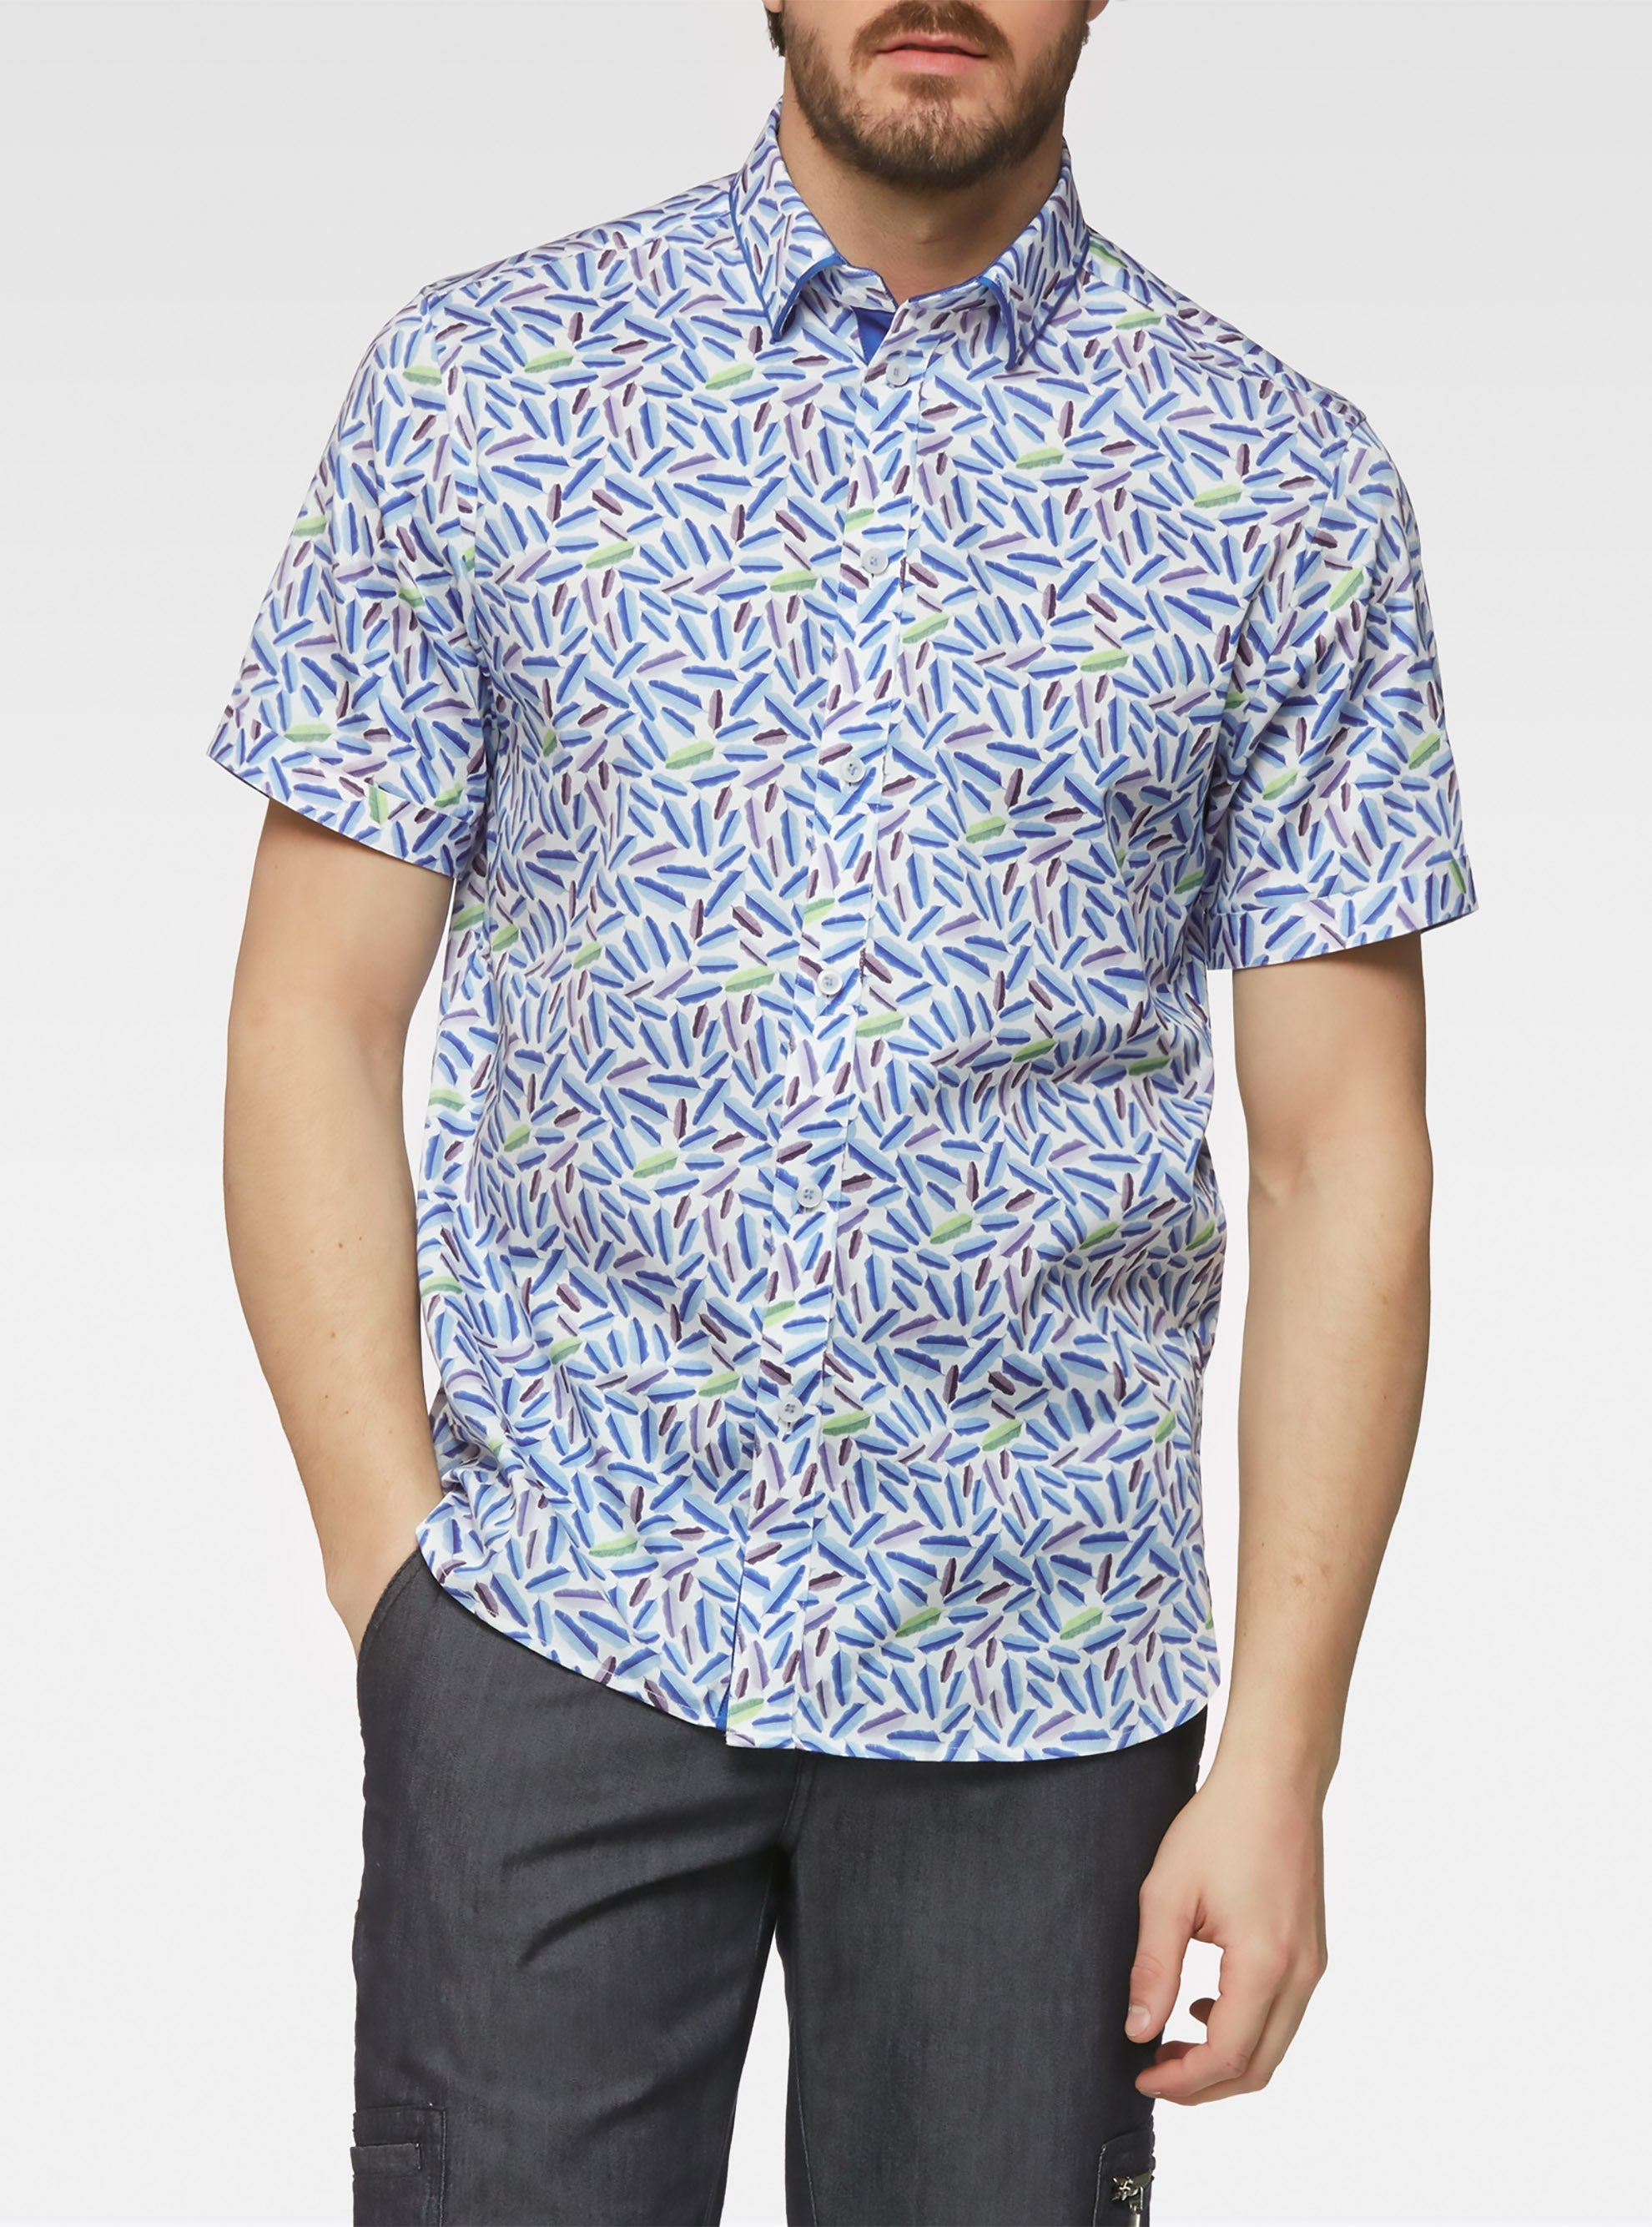 Short sleeve banana leaf printed shirts